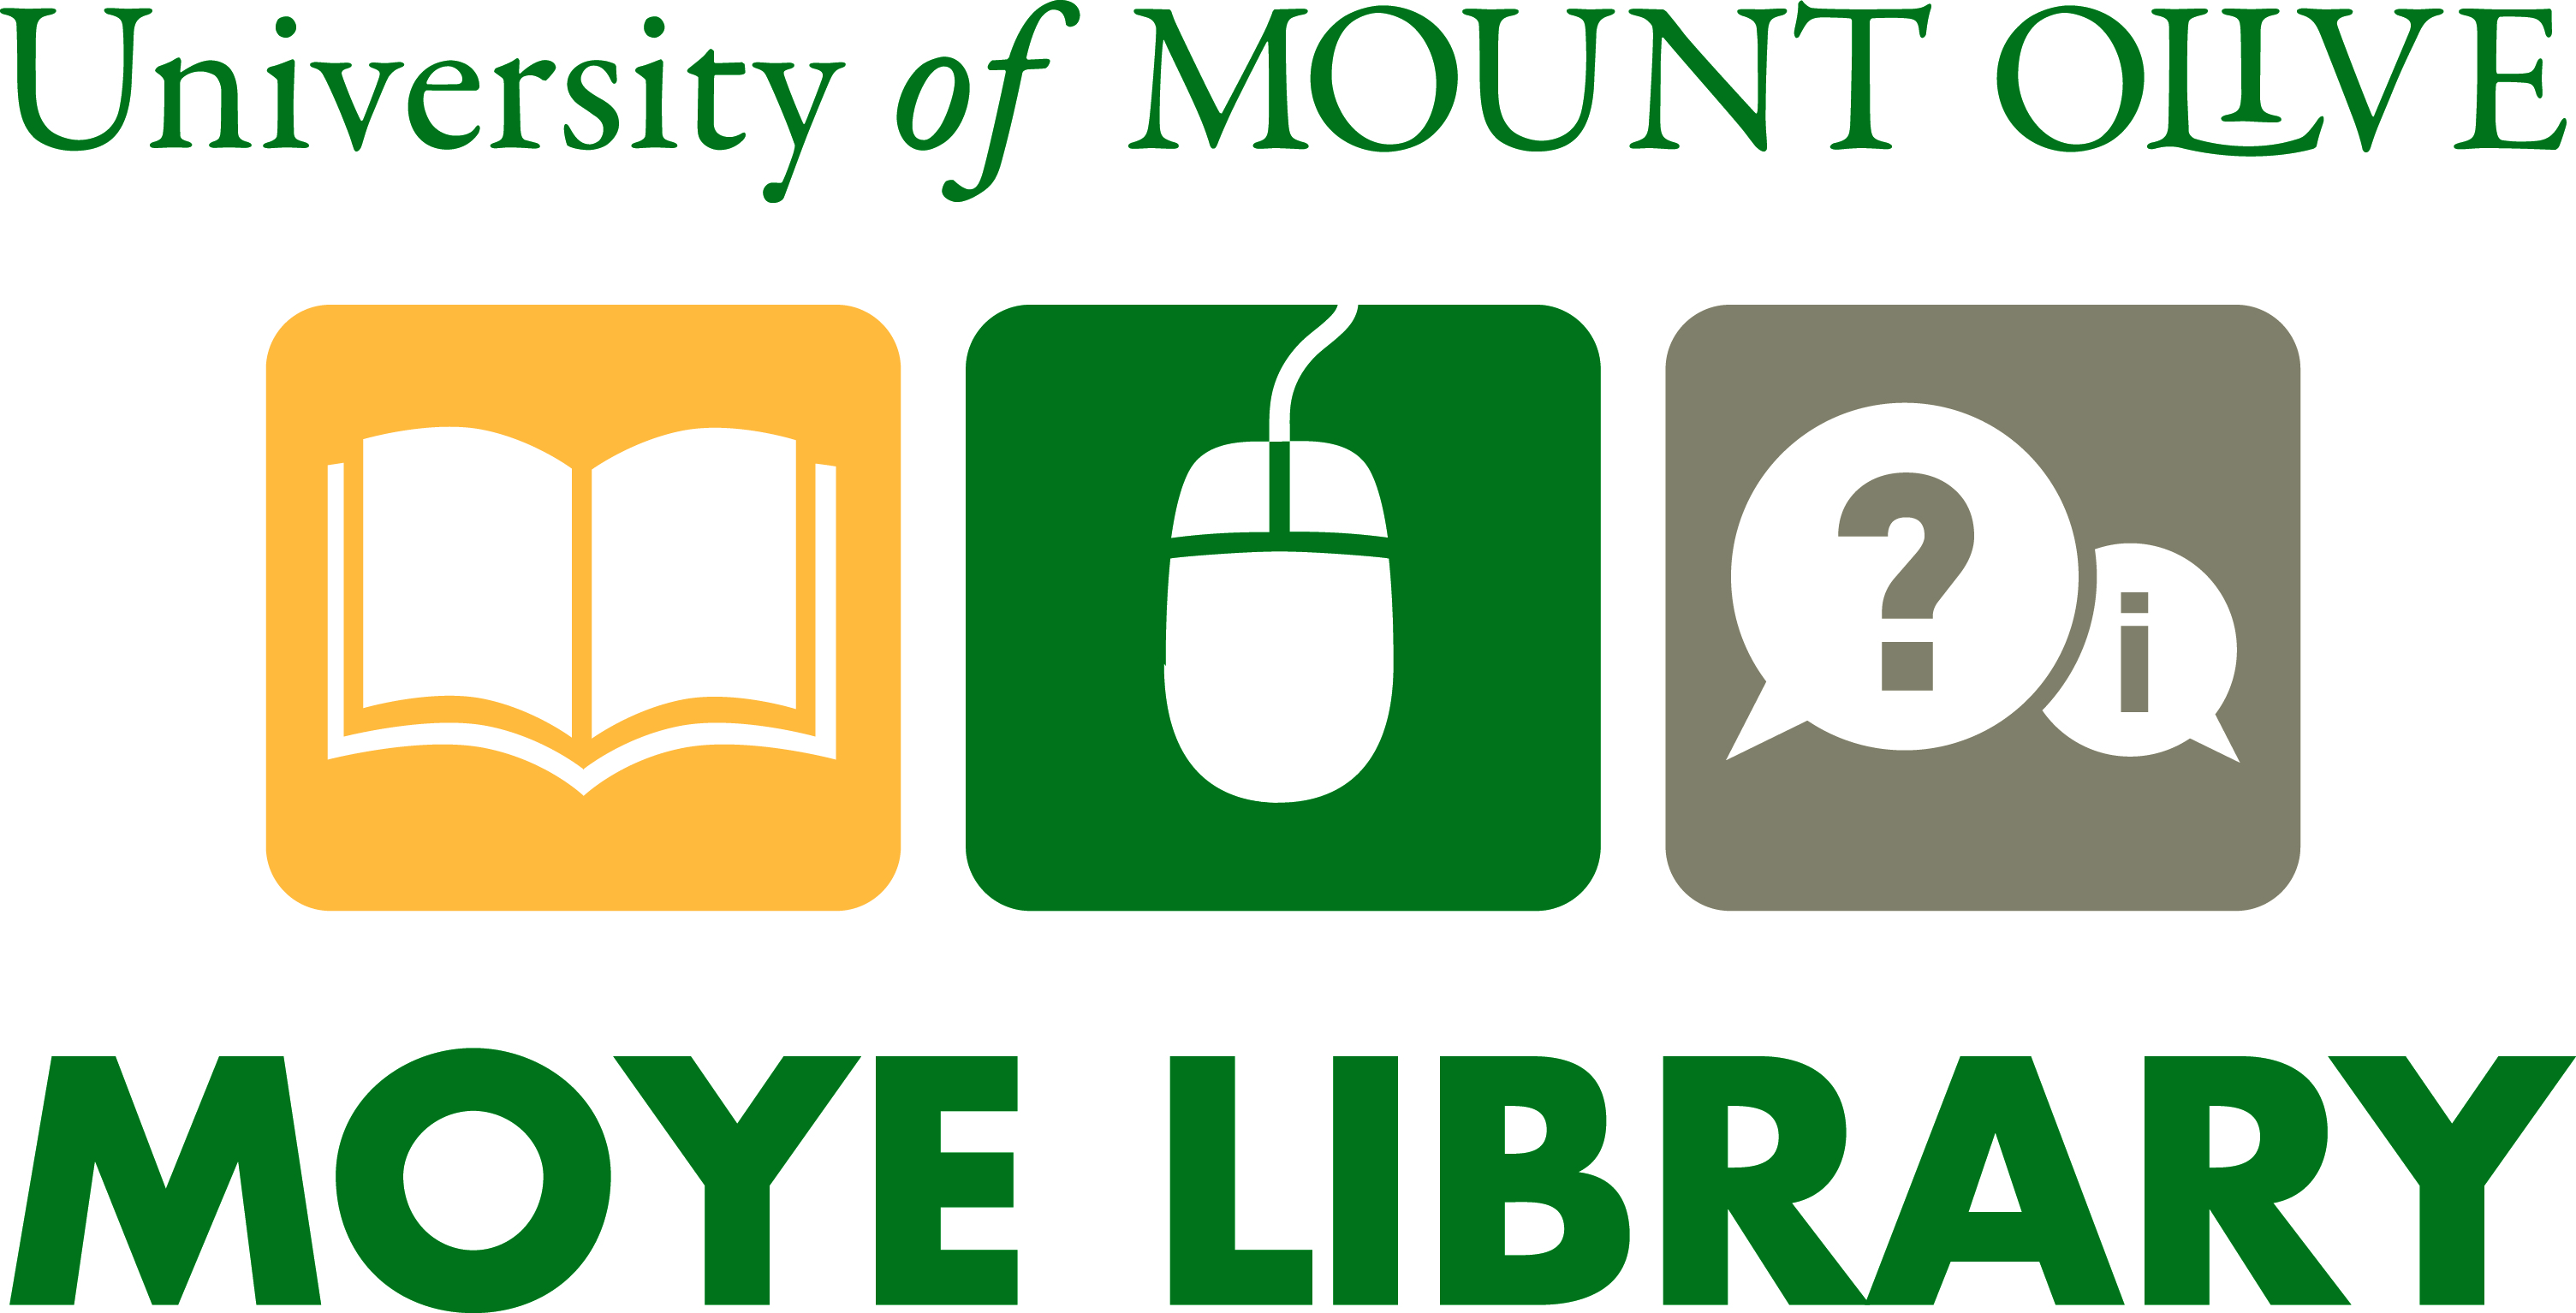 University of Mount Olive, Moye Library Logo